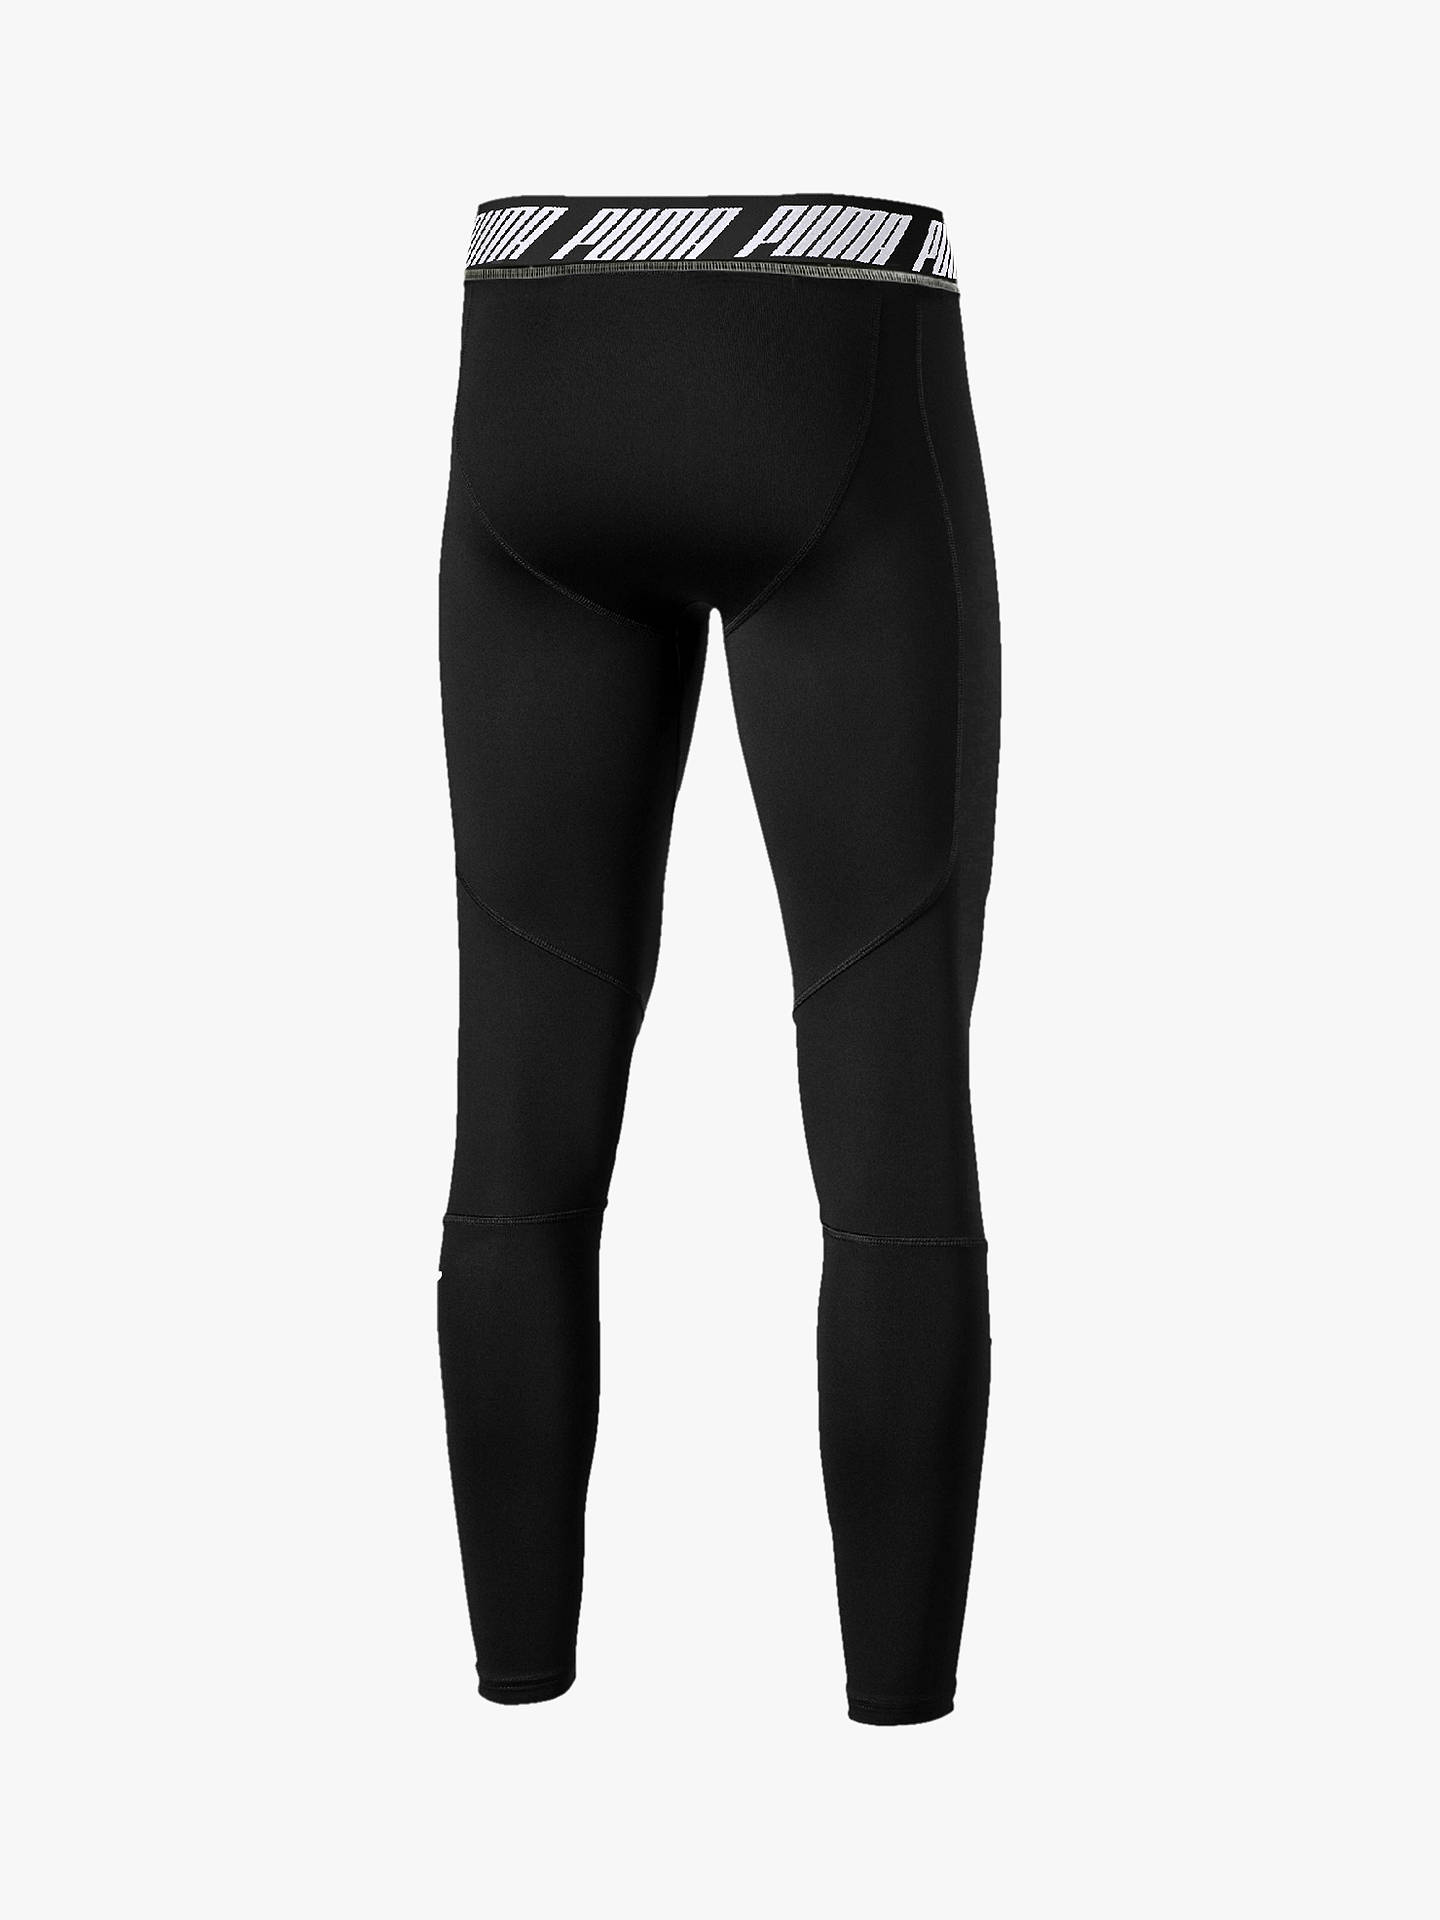 Buy PUMA Energy Tech Training Tights, Puma Black, M Online at johnlewis.com